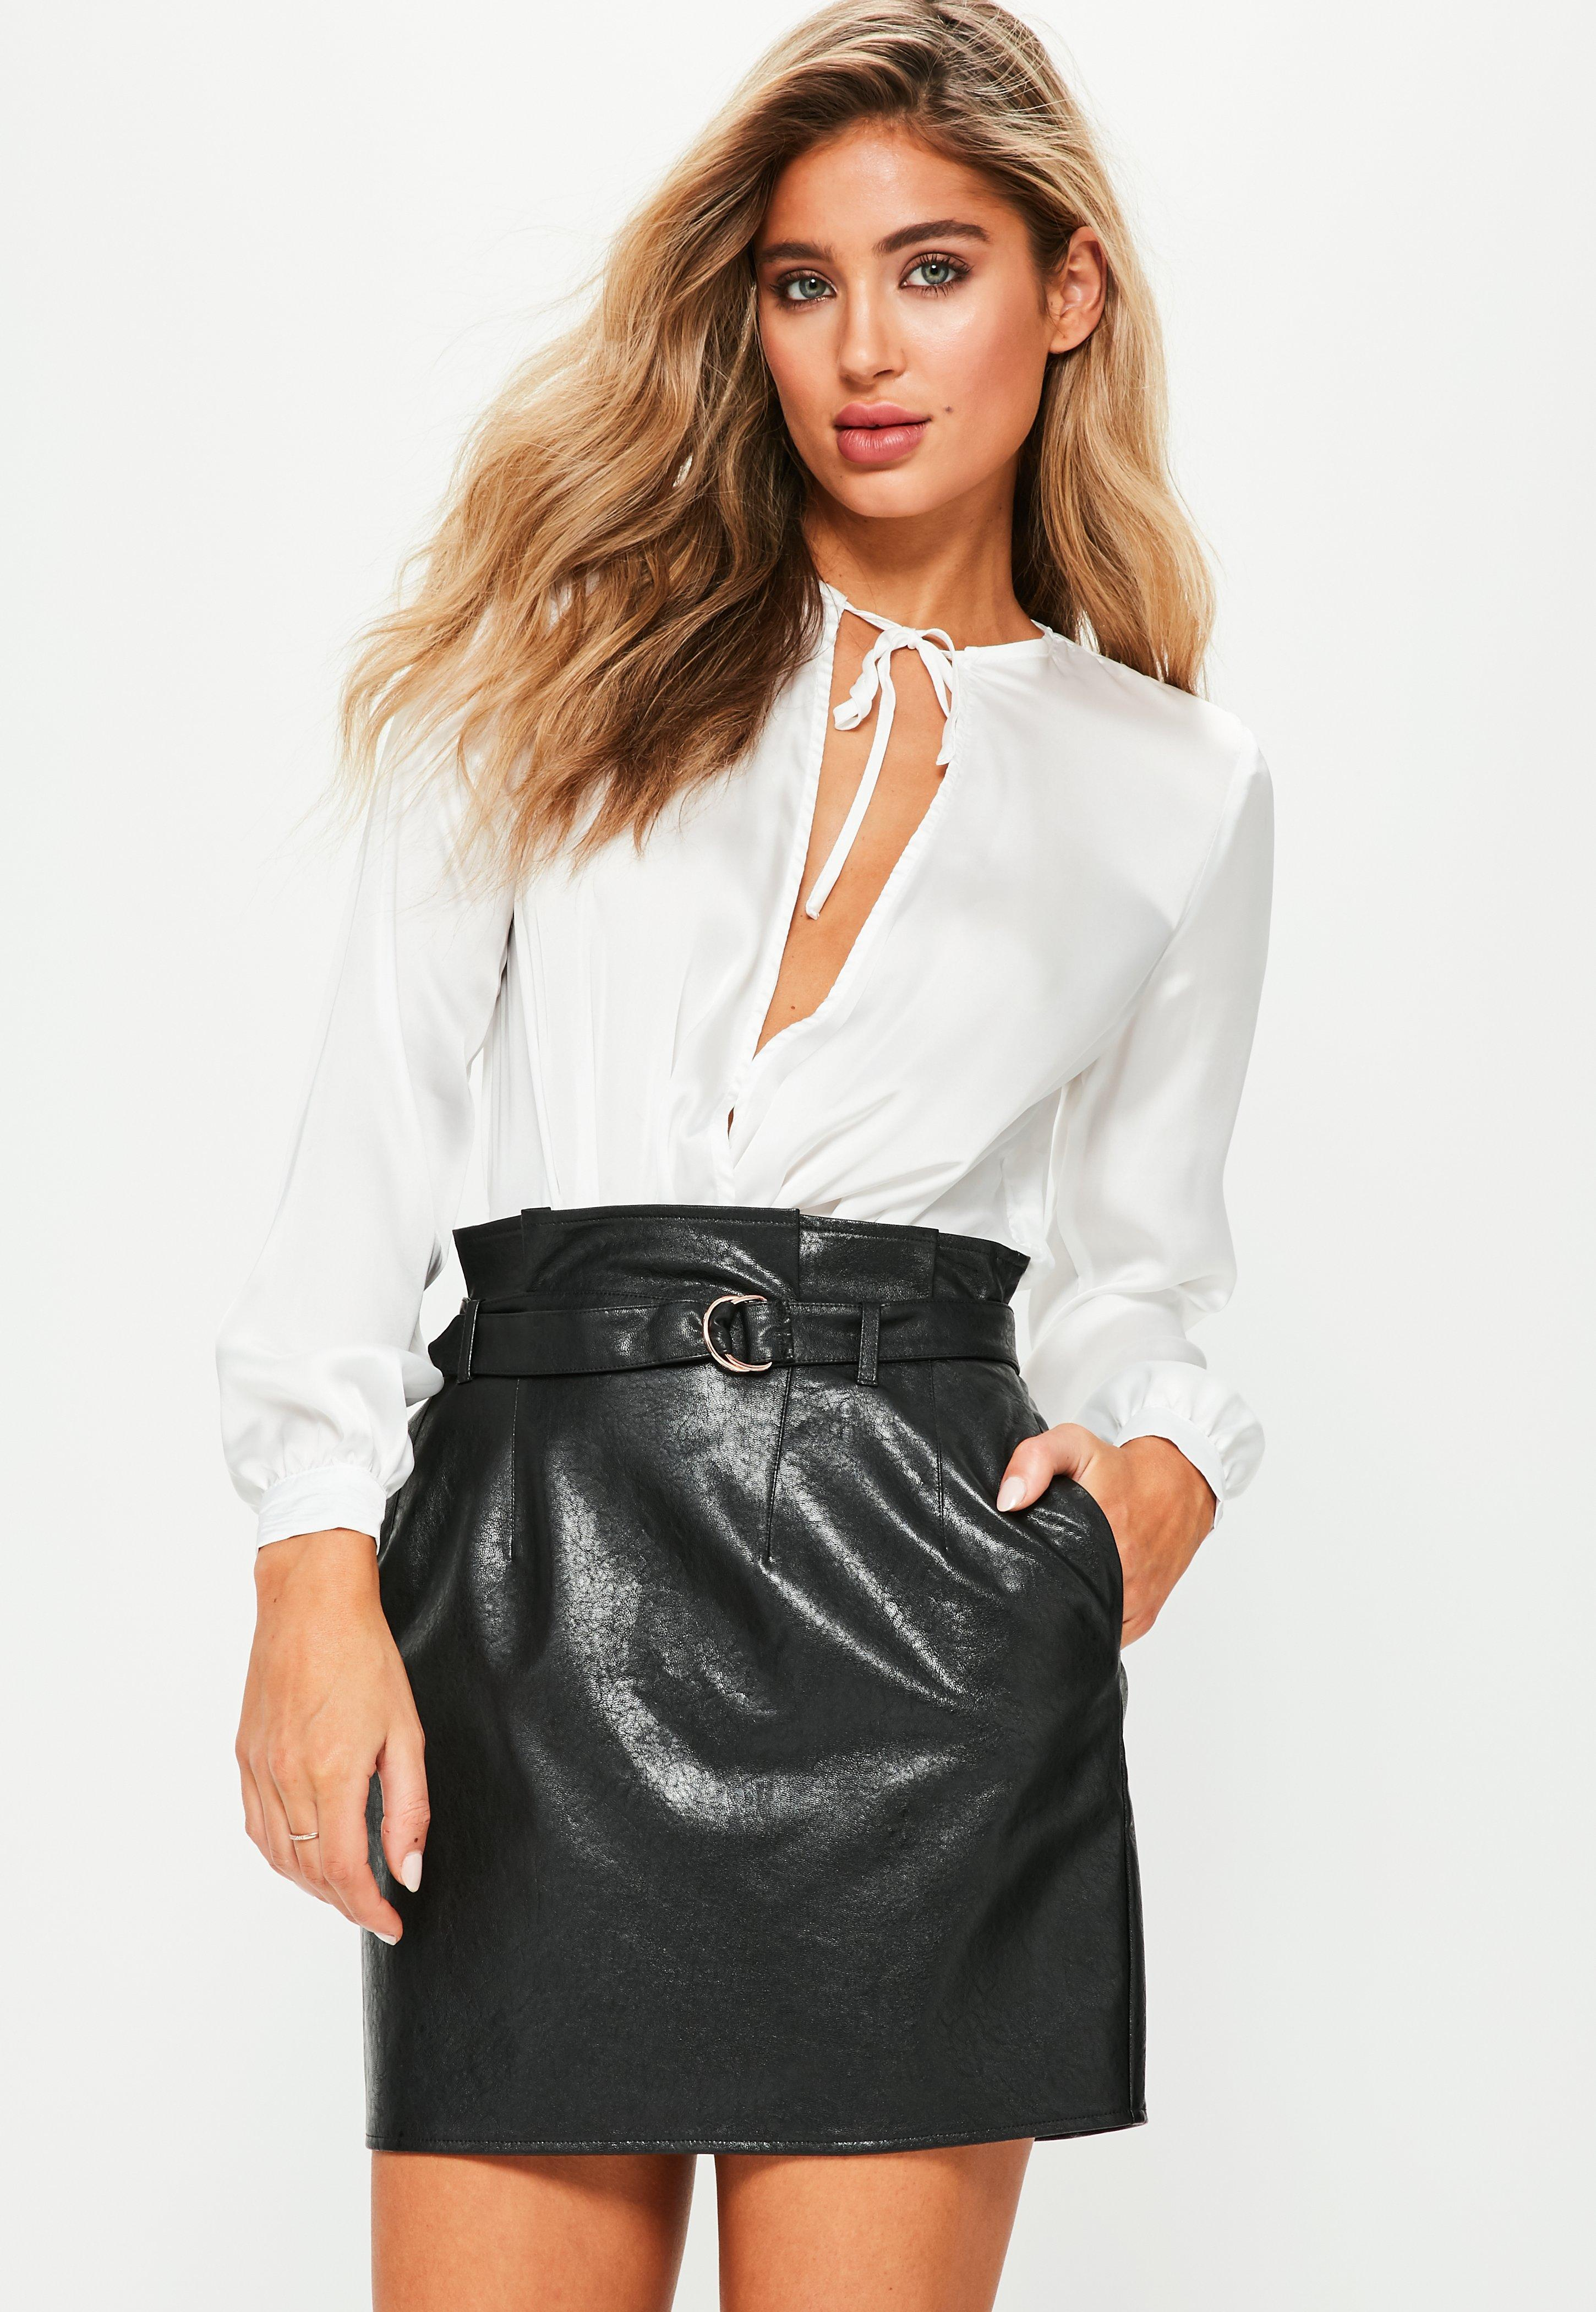 9984345fa9 Missguided Black Faux Leather Paperbag Waist Mini Skirt in Black - Lyst